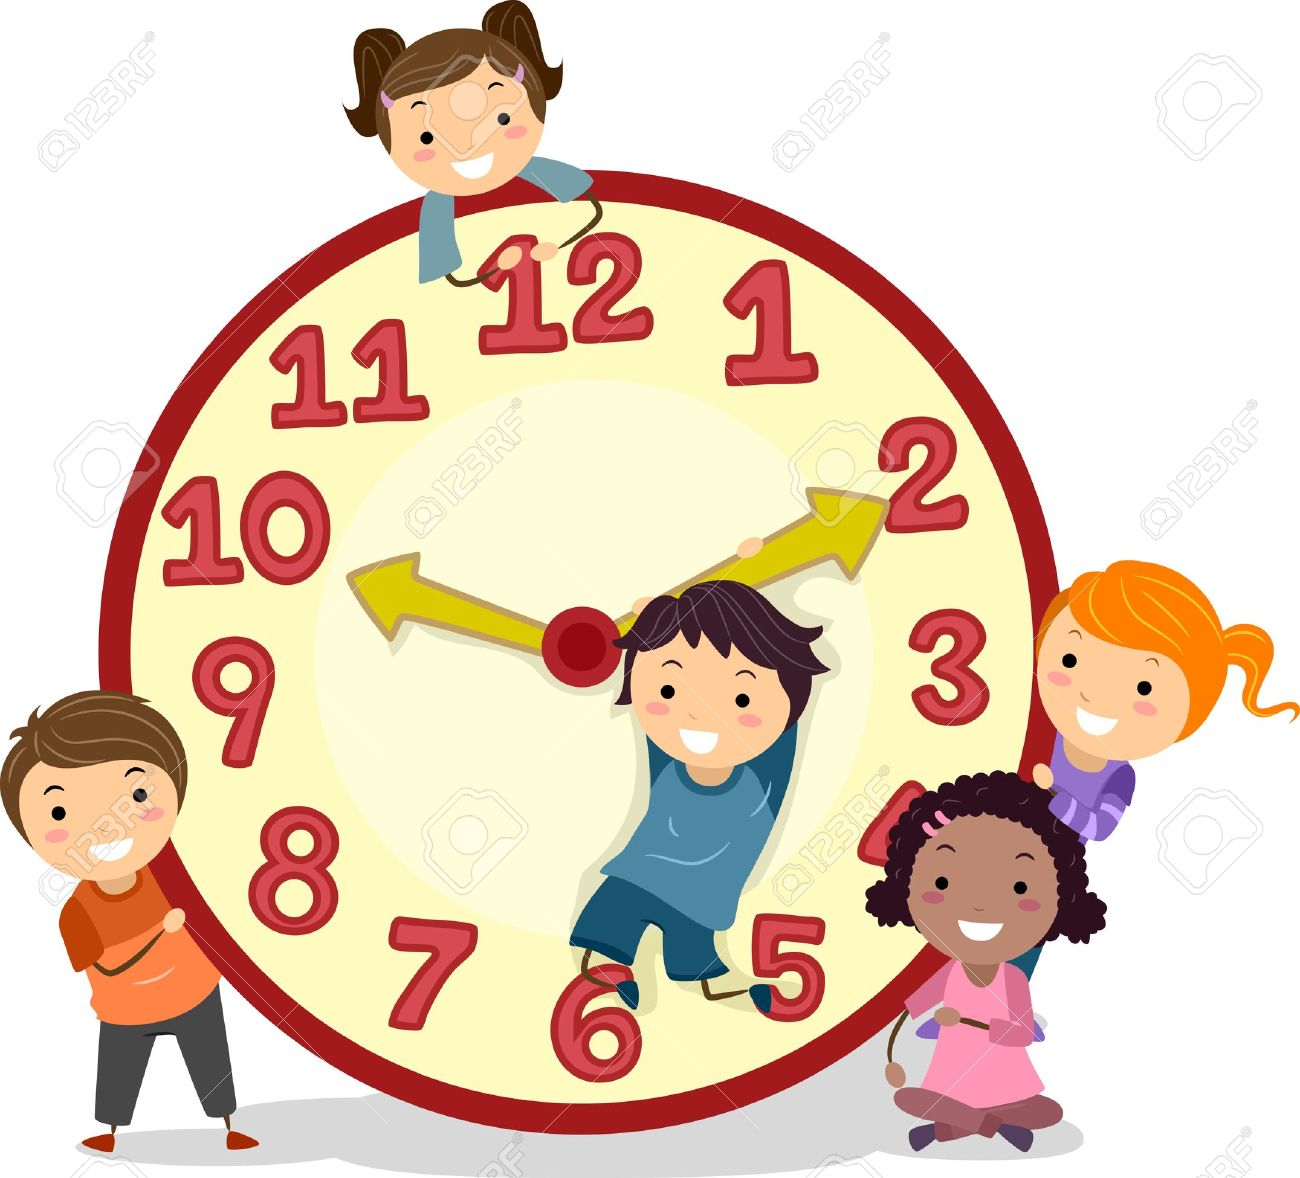 illustration of stickman kids on a big clock stock photo, picture